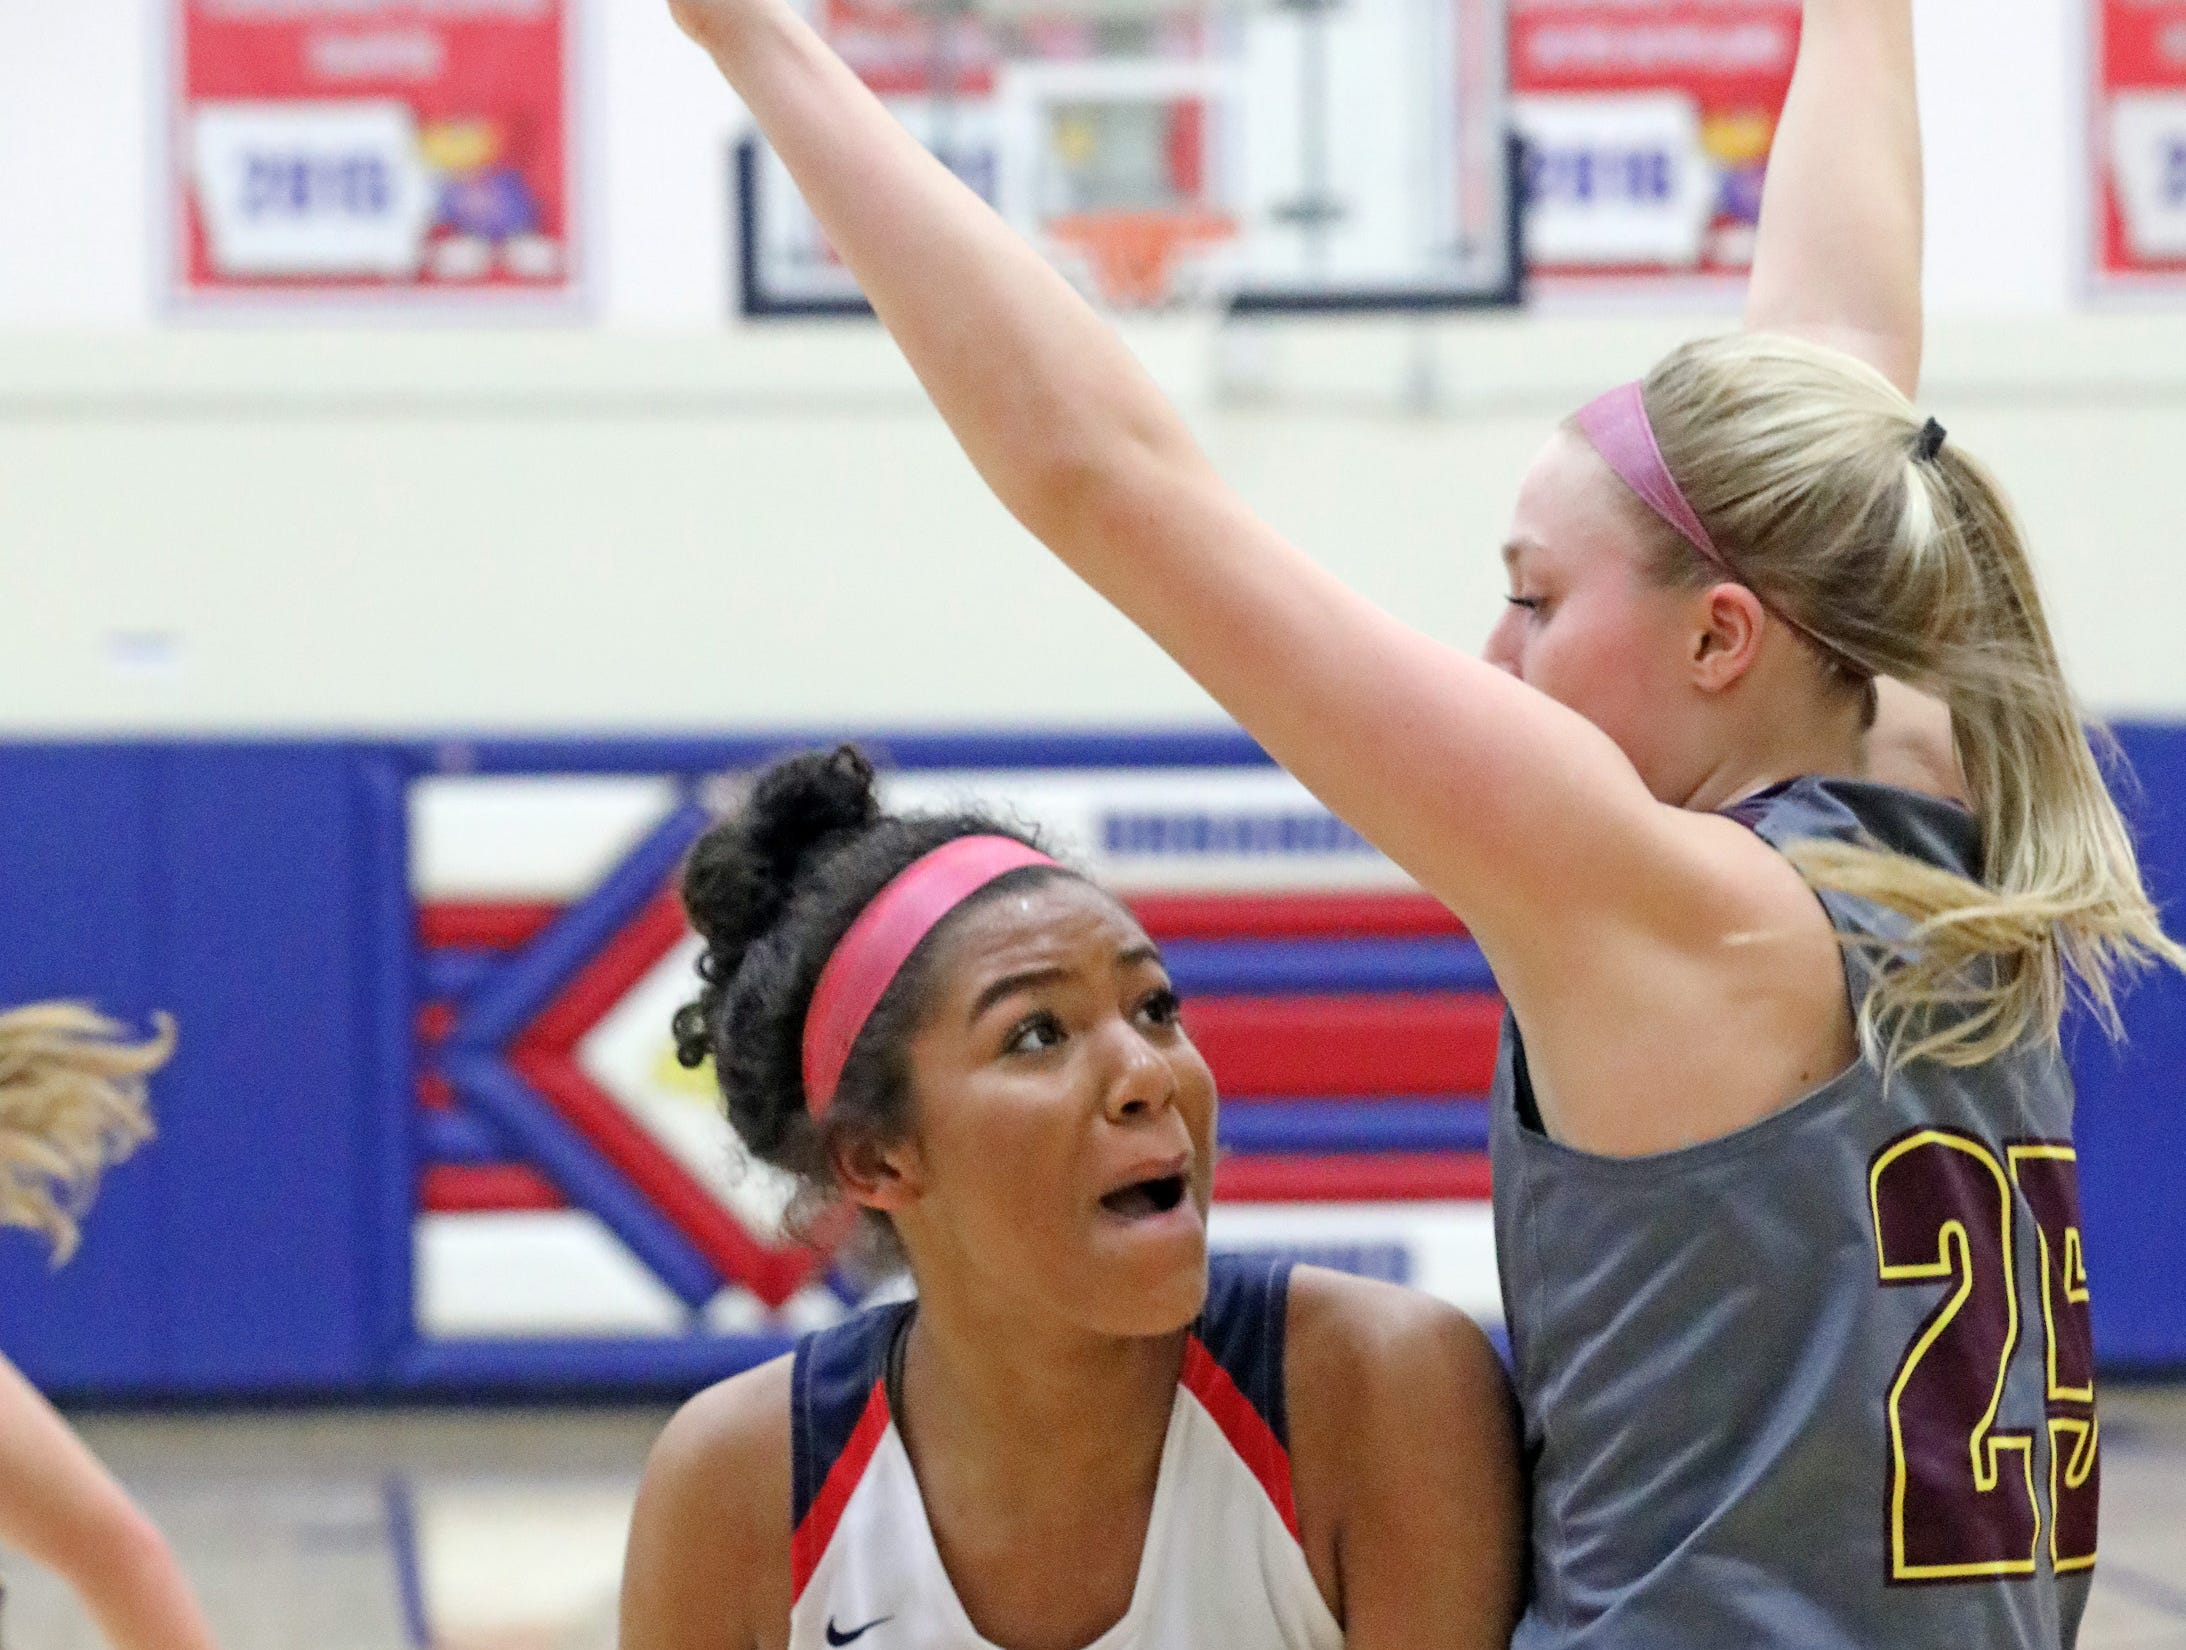 Urbandale freshman forward Jada Gyamfi tries to get past the defense of Ankeny senior Sara McCullough as the Ankeny Hawkettes compete against the Urbandale J-Hawks in high school basketball on Friday, Dec. 14, 2018 at Urbandale High School. Ankeny won 46 to 40.